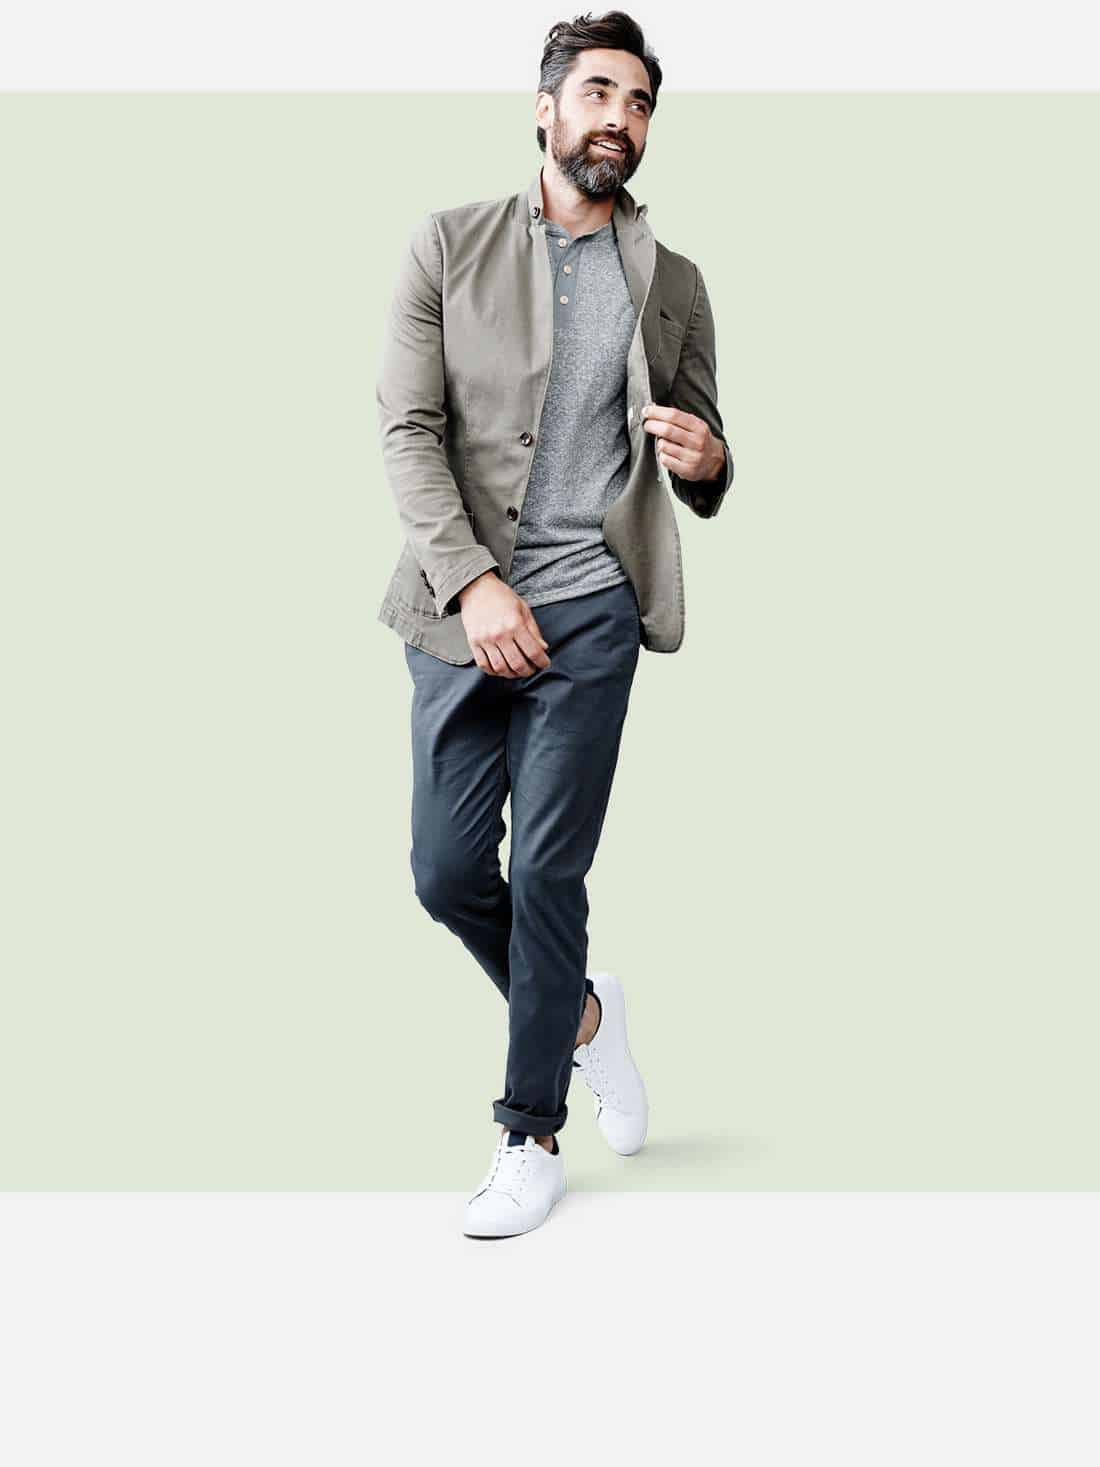 Targets New Mens Line Goodfellow Amp Co Fitting Room